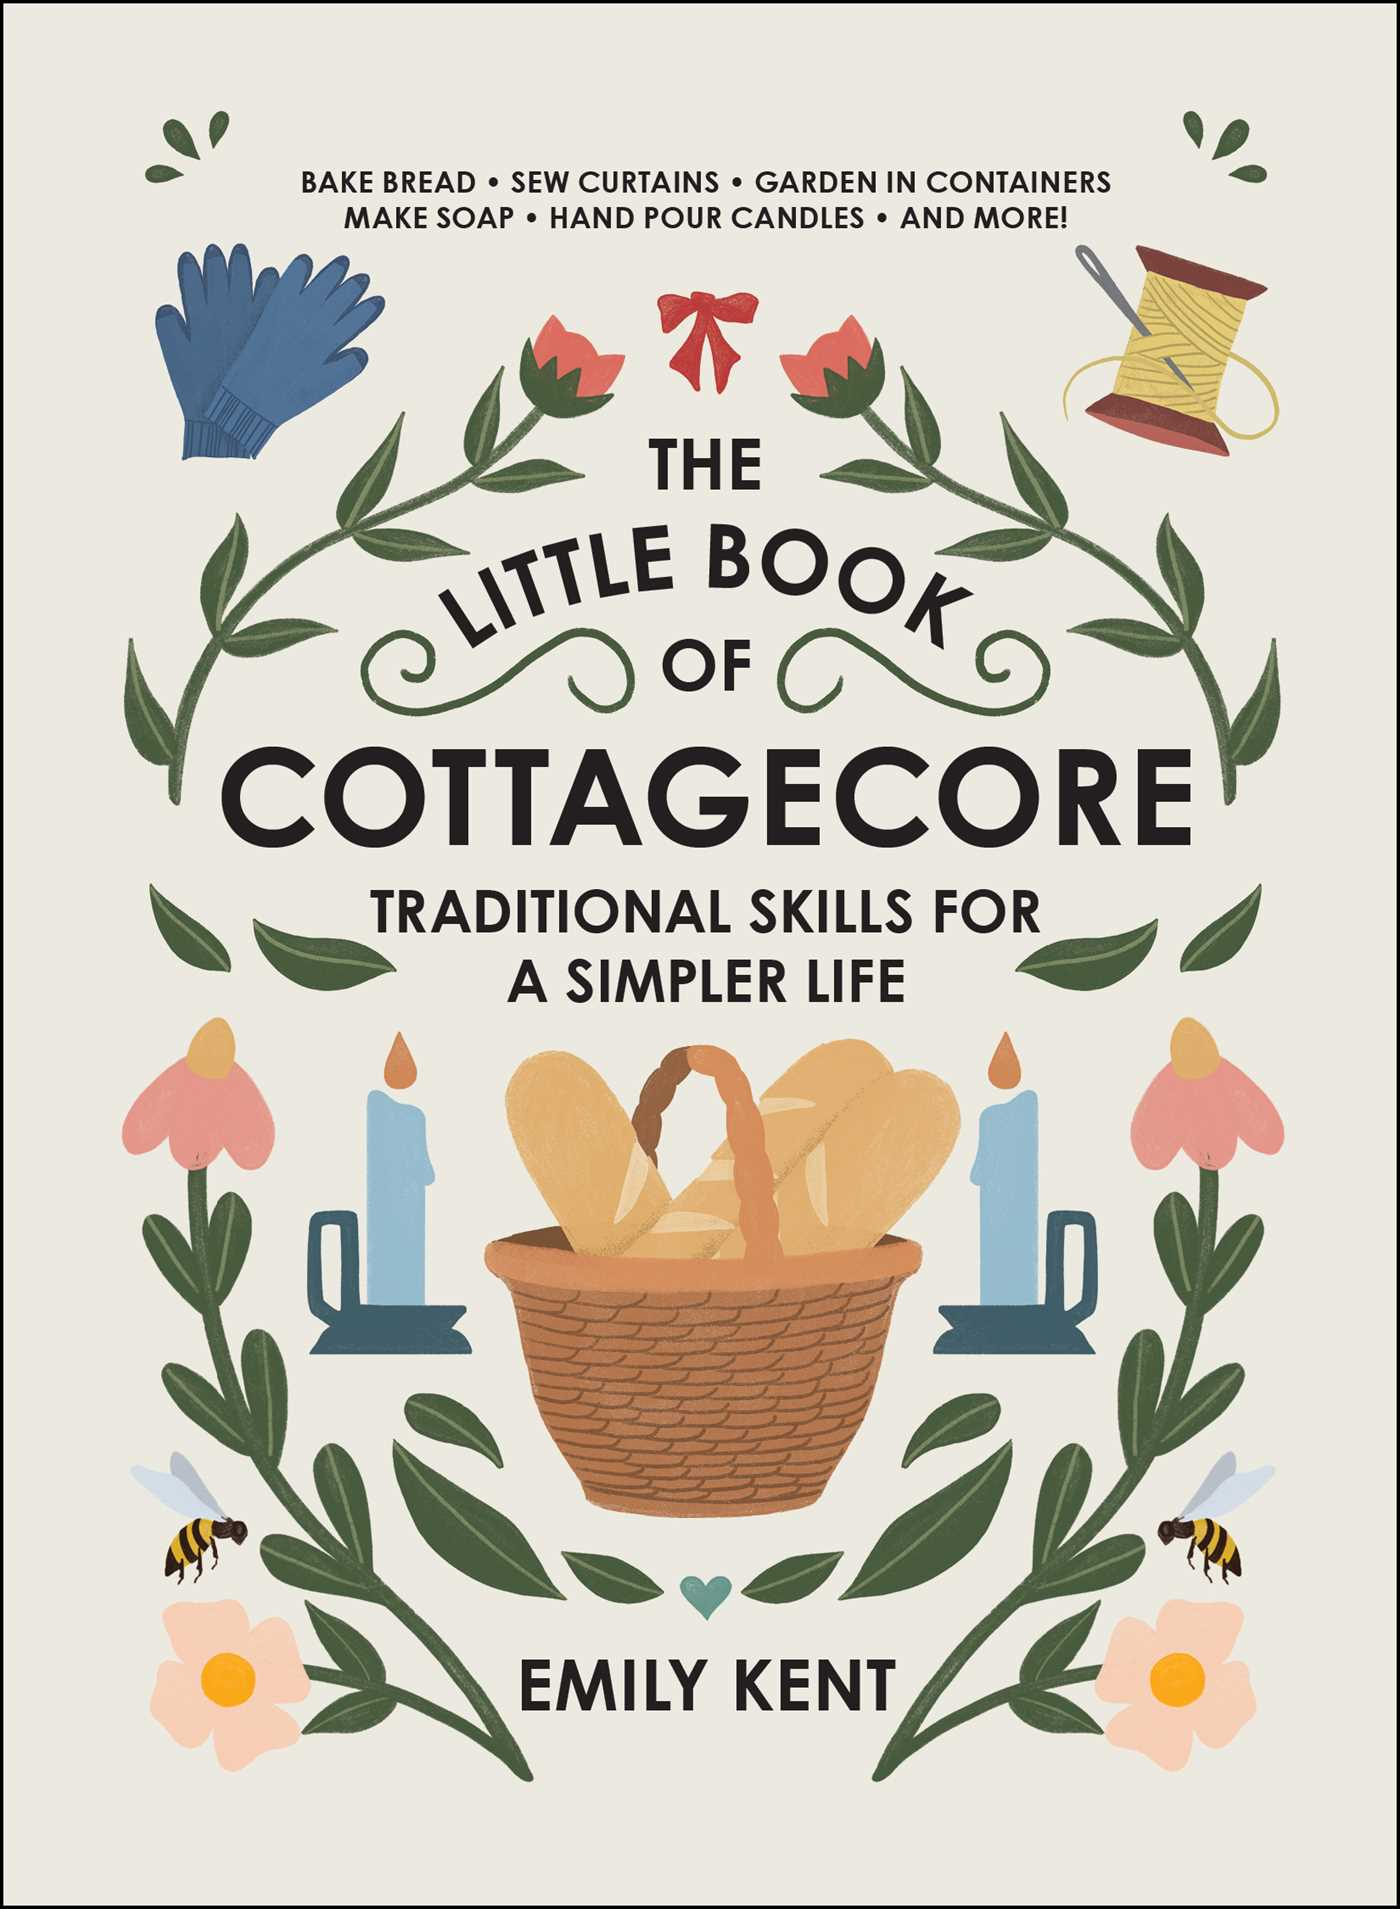 The Little Book of Cottagecore : Traditional Skills for a Simpler Life | Dictionary & Encyclopedia